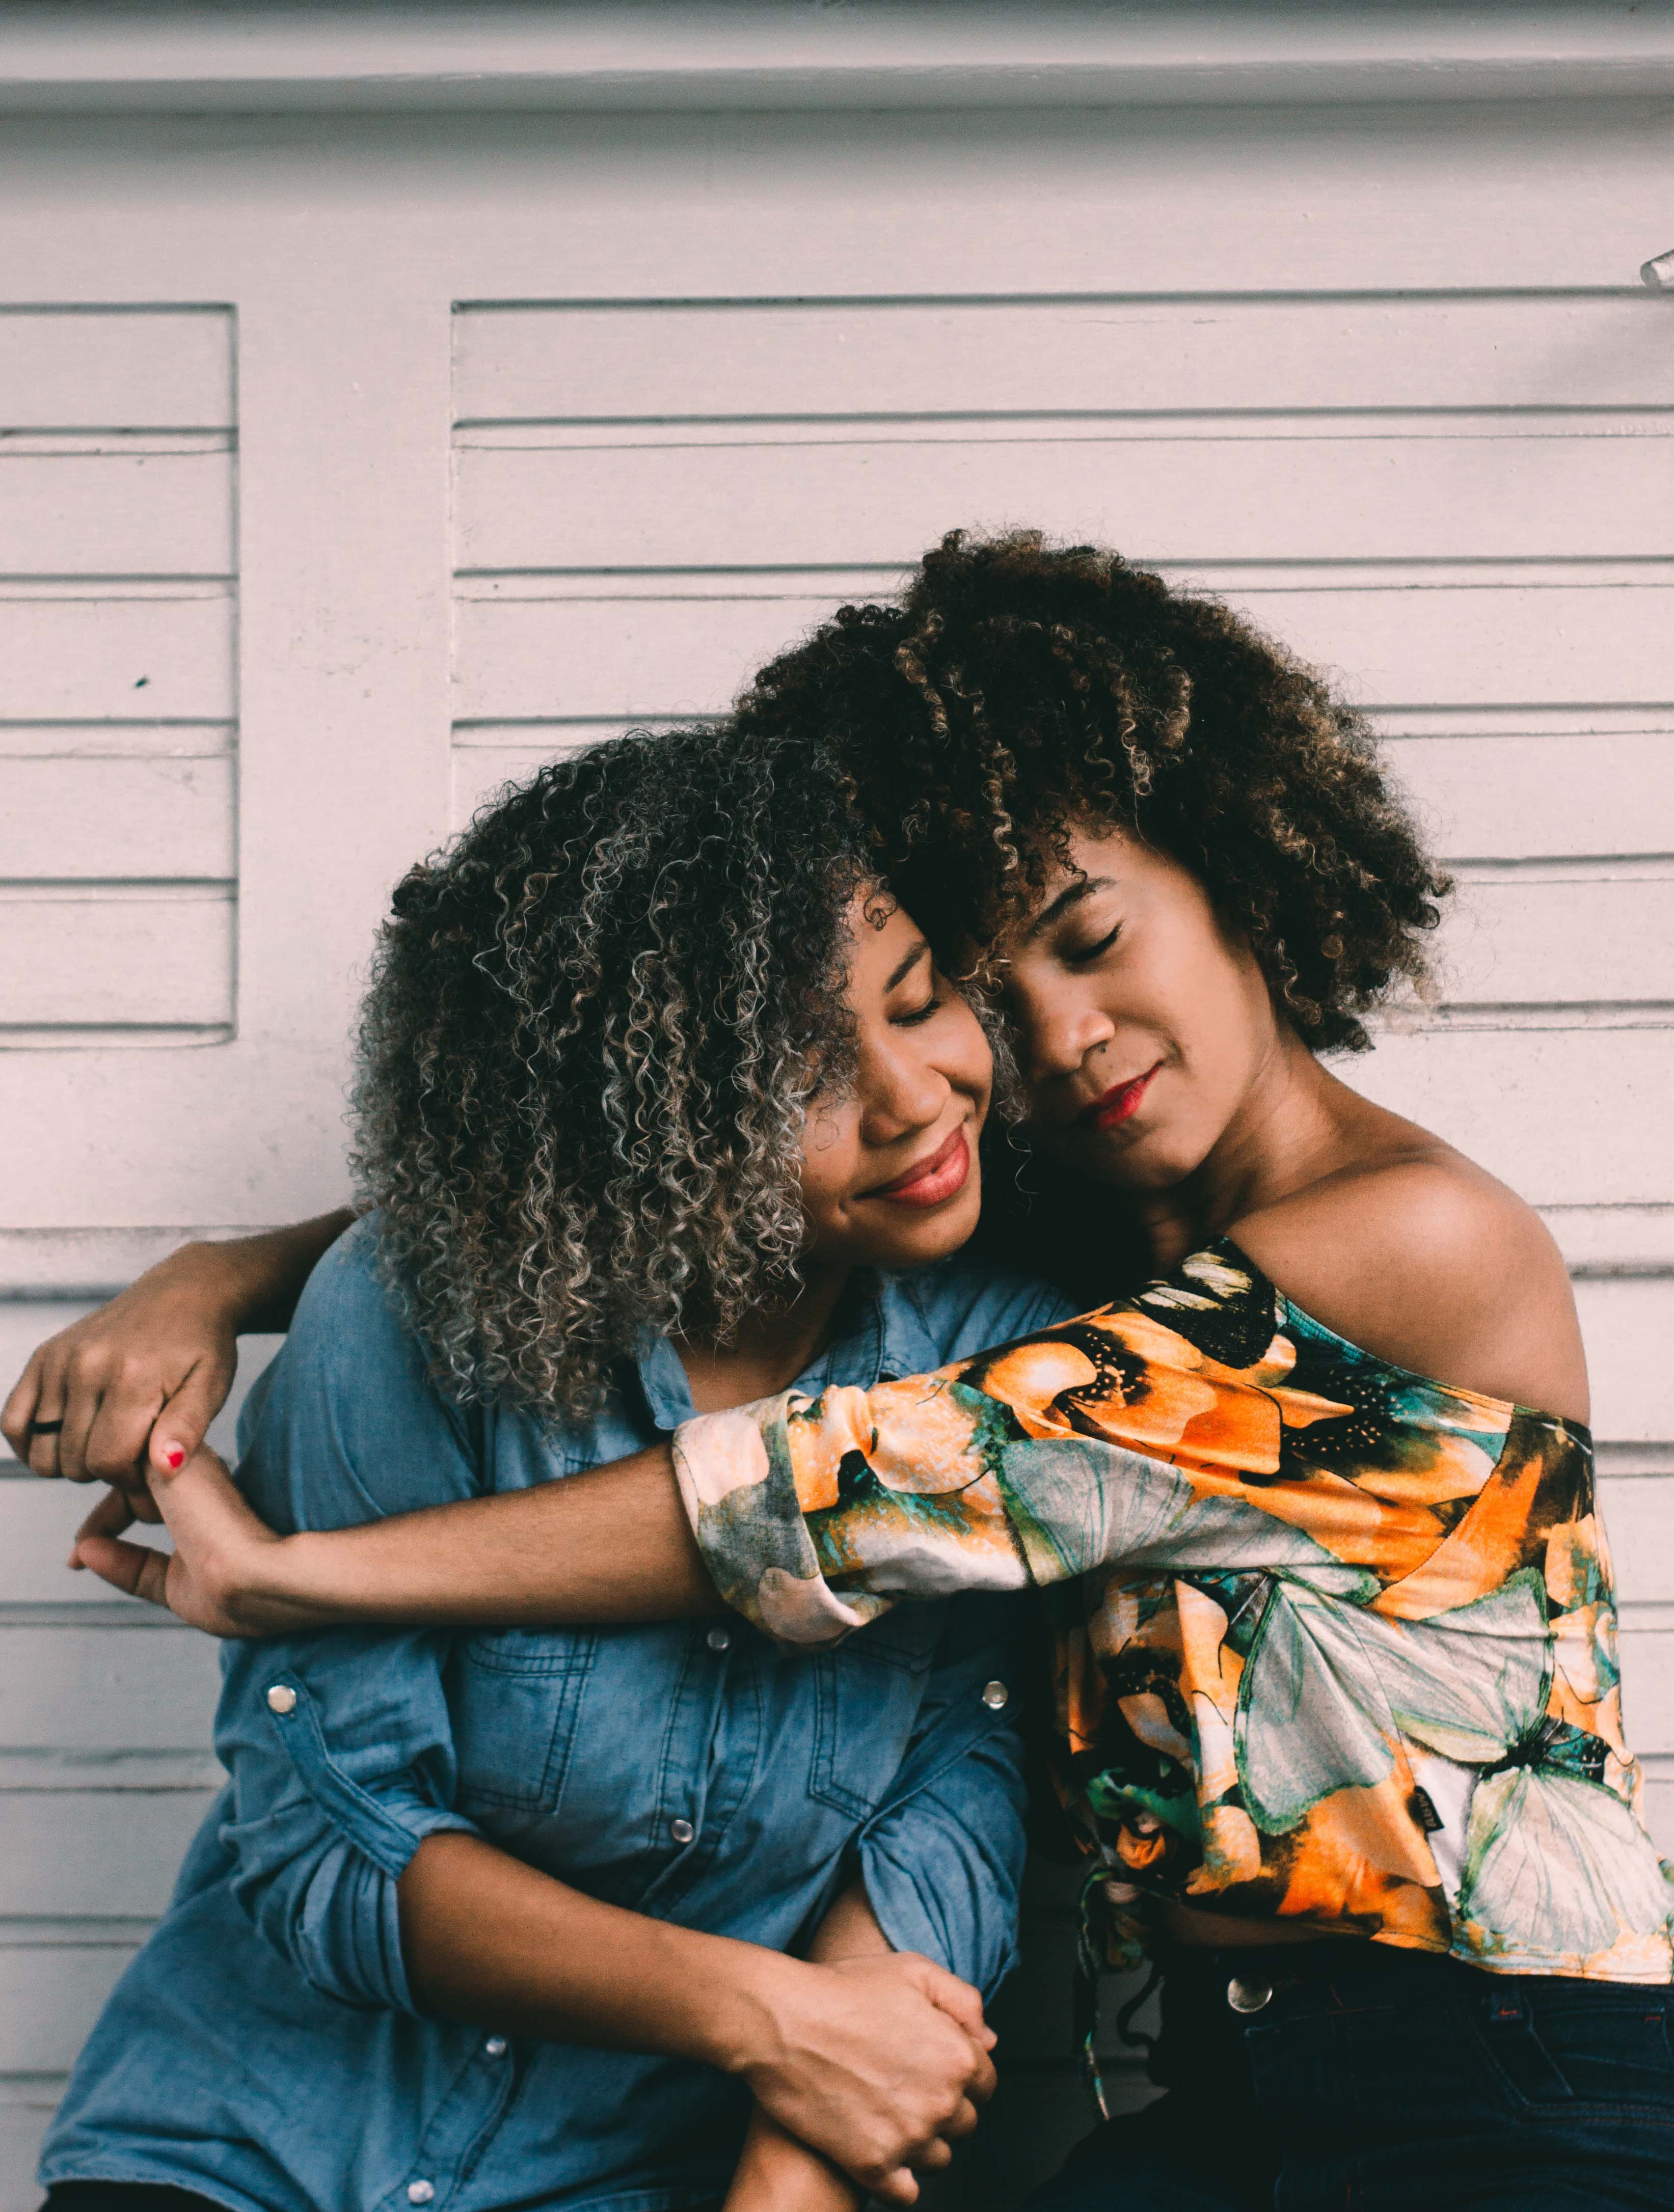 Two Black women embracing peacefully